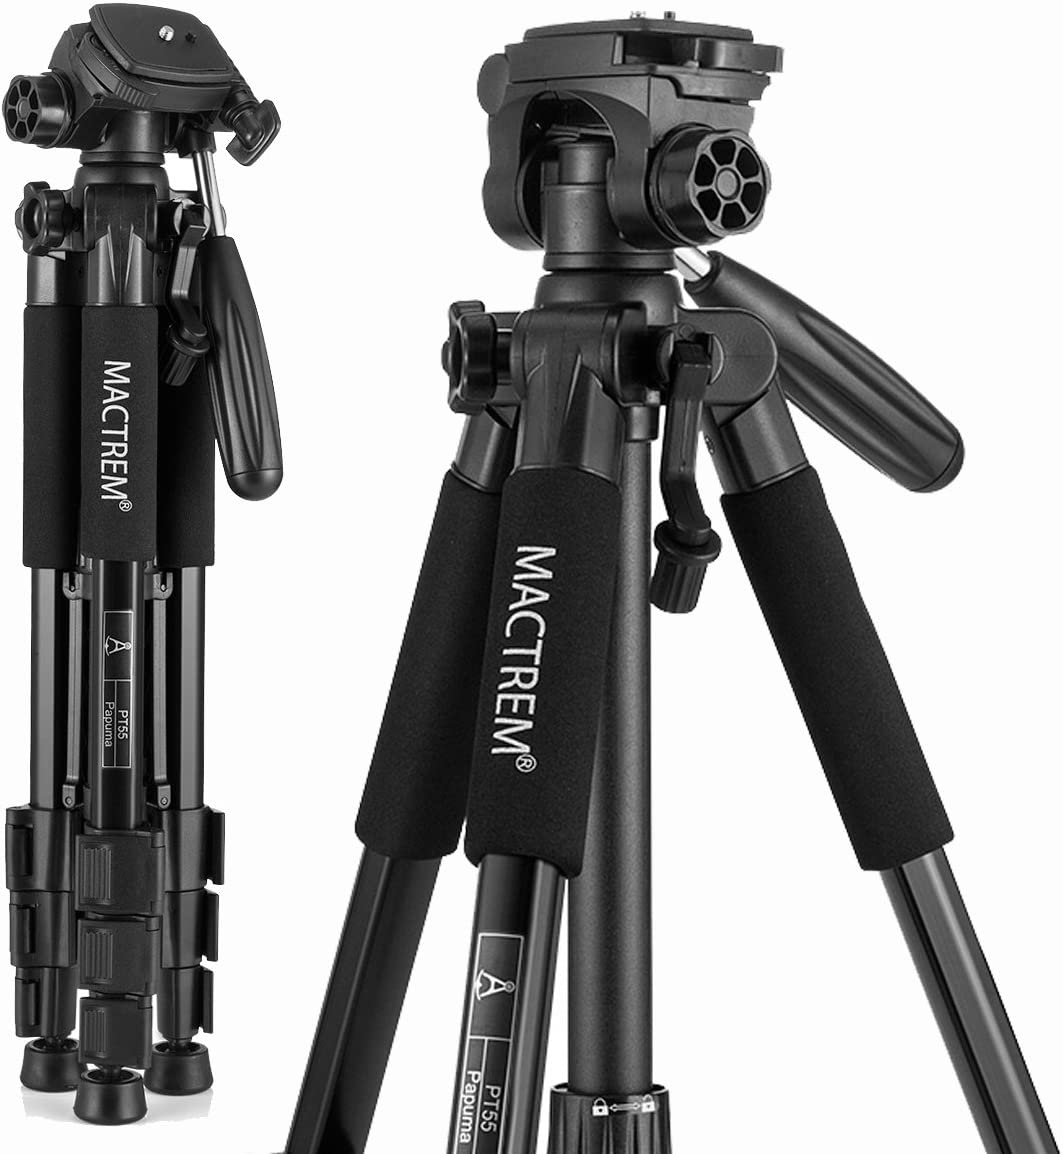 Mactrem PT55 Travel Camera Tripod Lightweight Aluminum for DSLR SLR Canon Nikon Sony Olympus DV with Carry Bag -11 lbs(5kg) Load (Black)